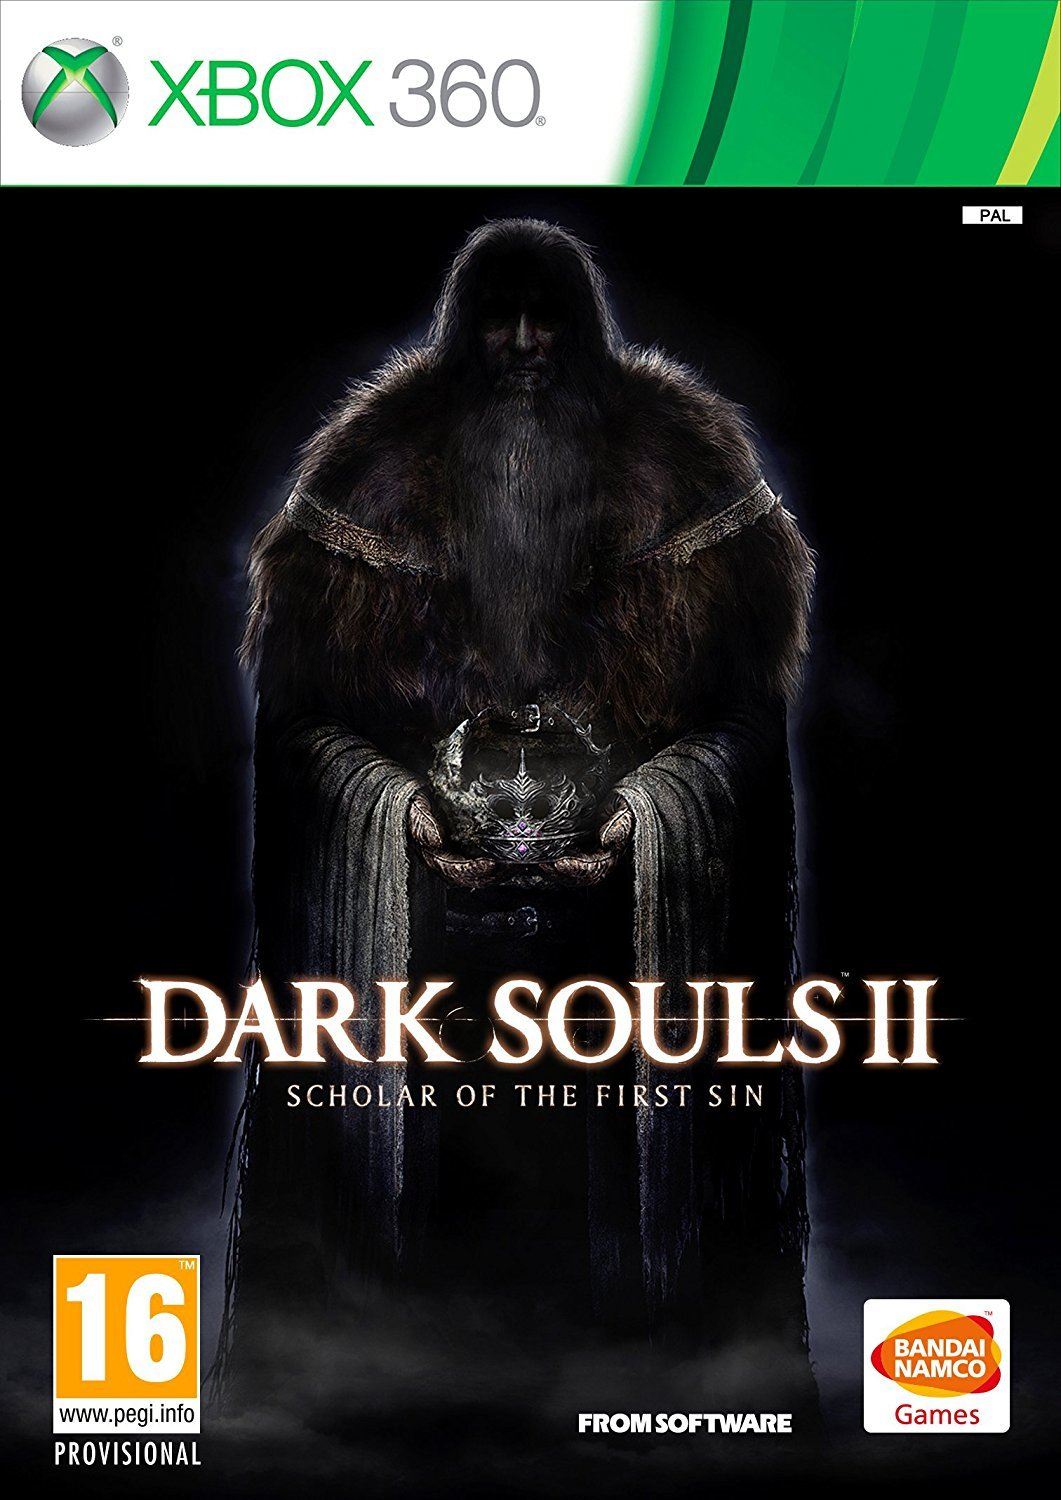 Dark Souls 2: Scholar of the First Sin for Xbox 360 image